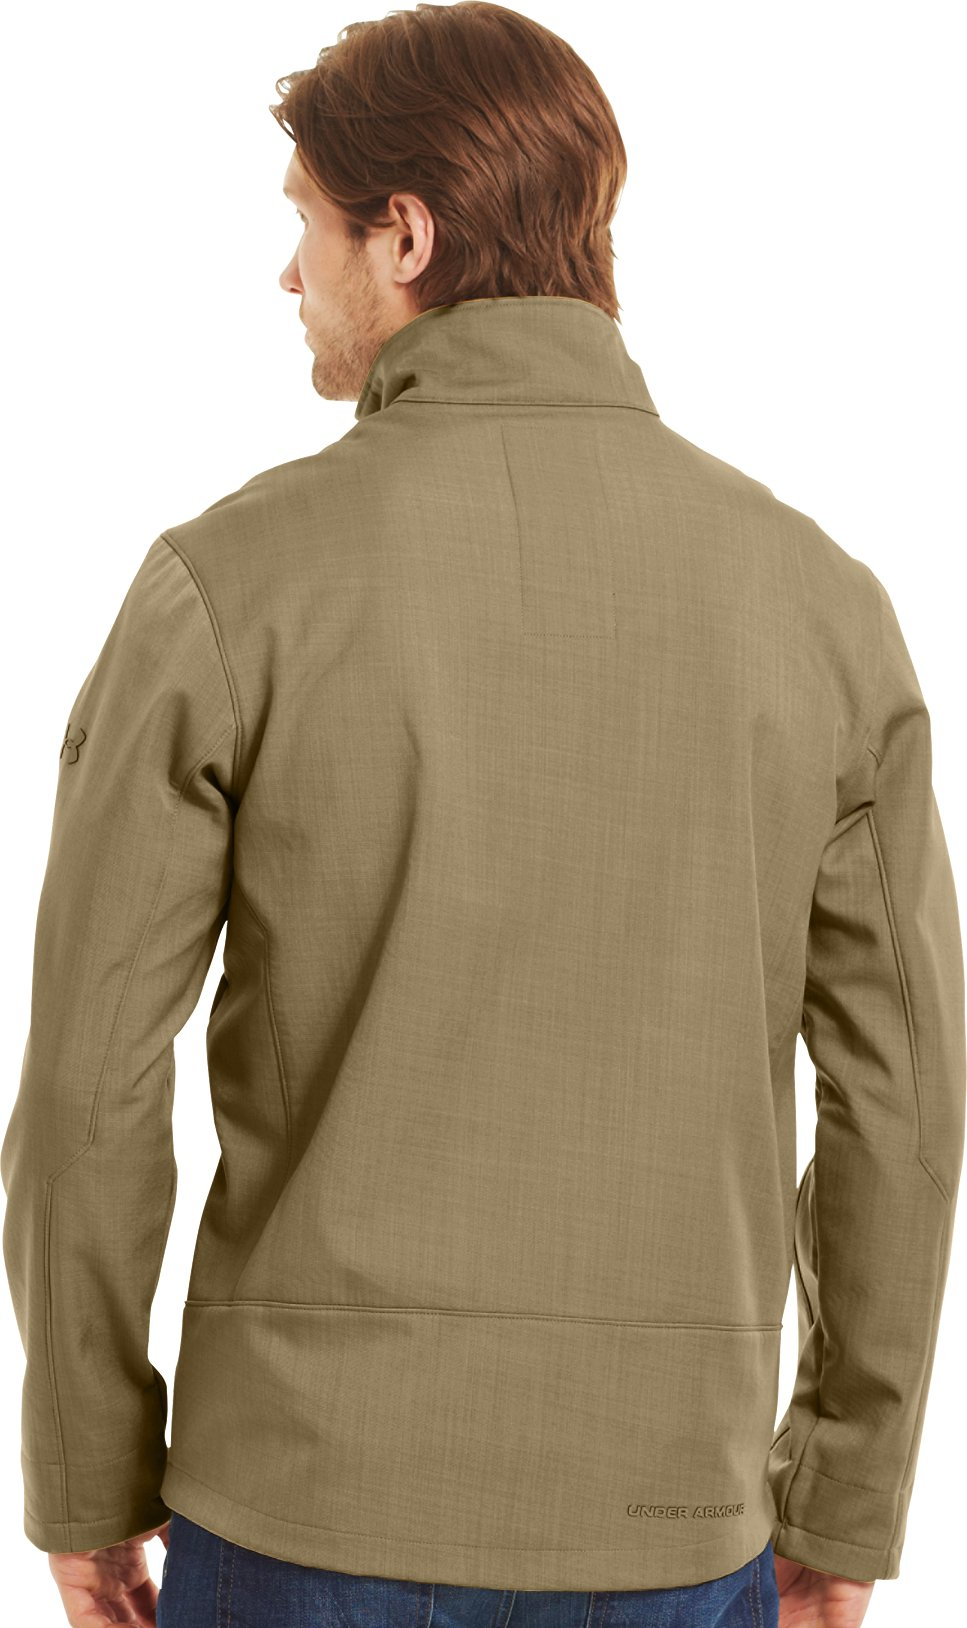 Men's ColdGear® Infrared Radar Softshell, DEER HIDE, Back